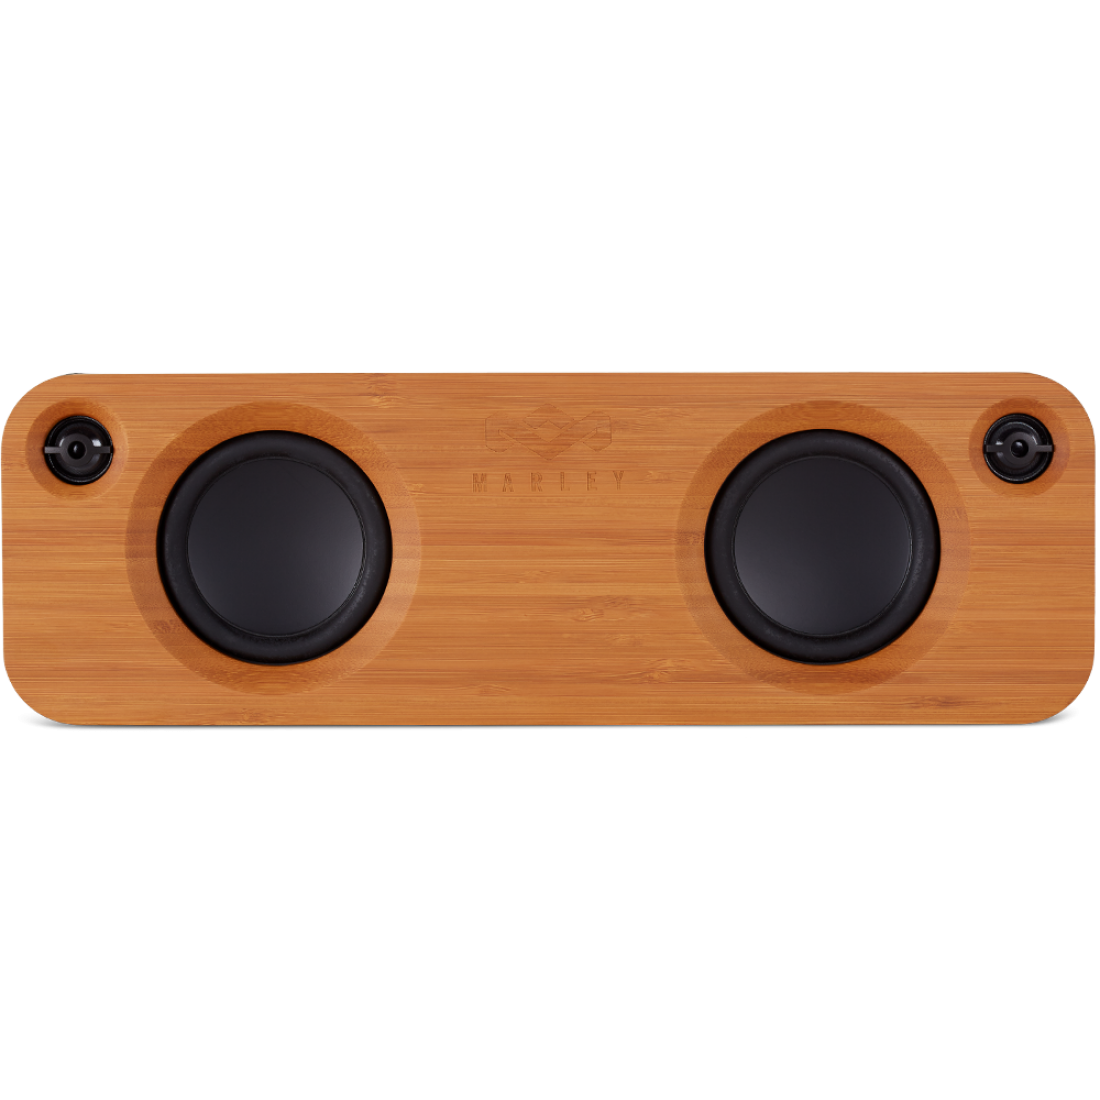 Get Together Portable Bluetooth Speaker | House of Marley